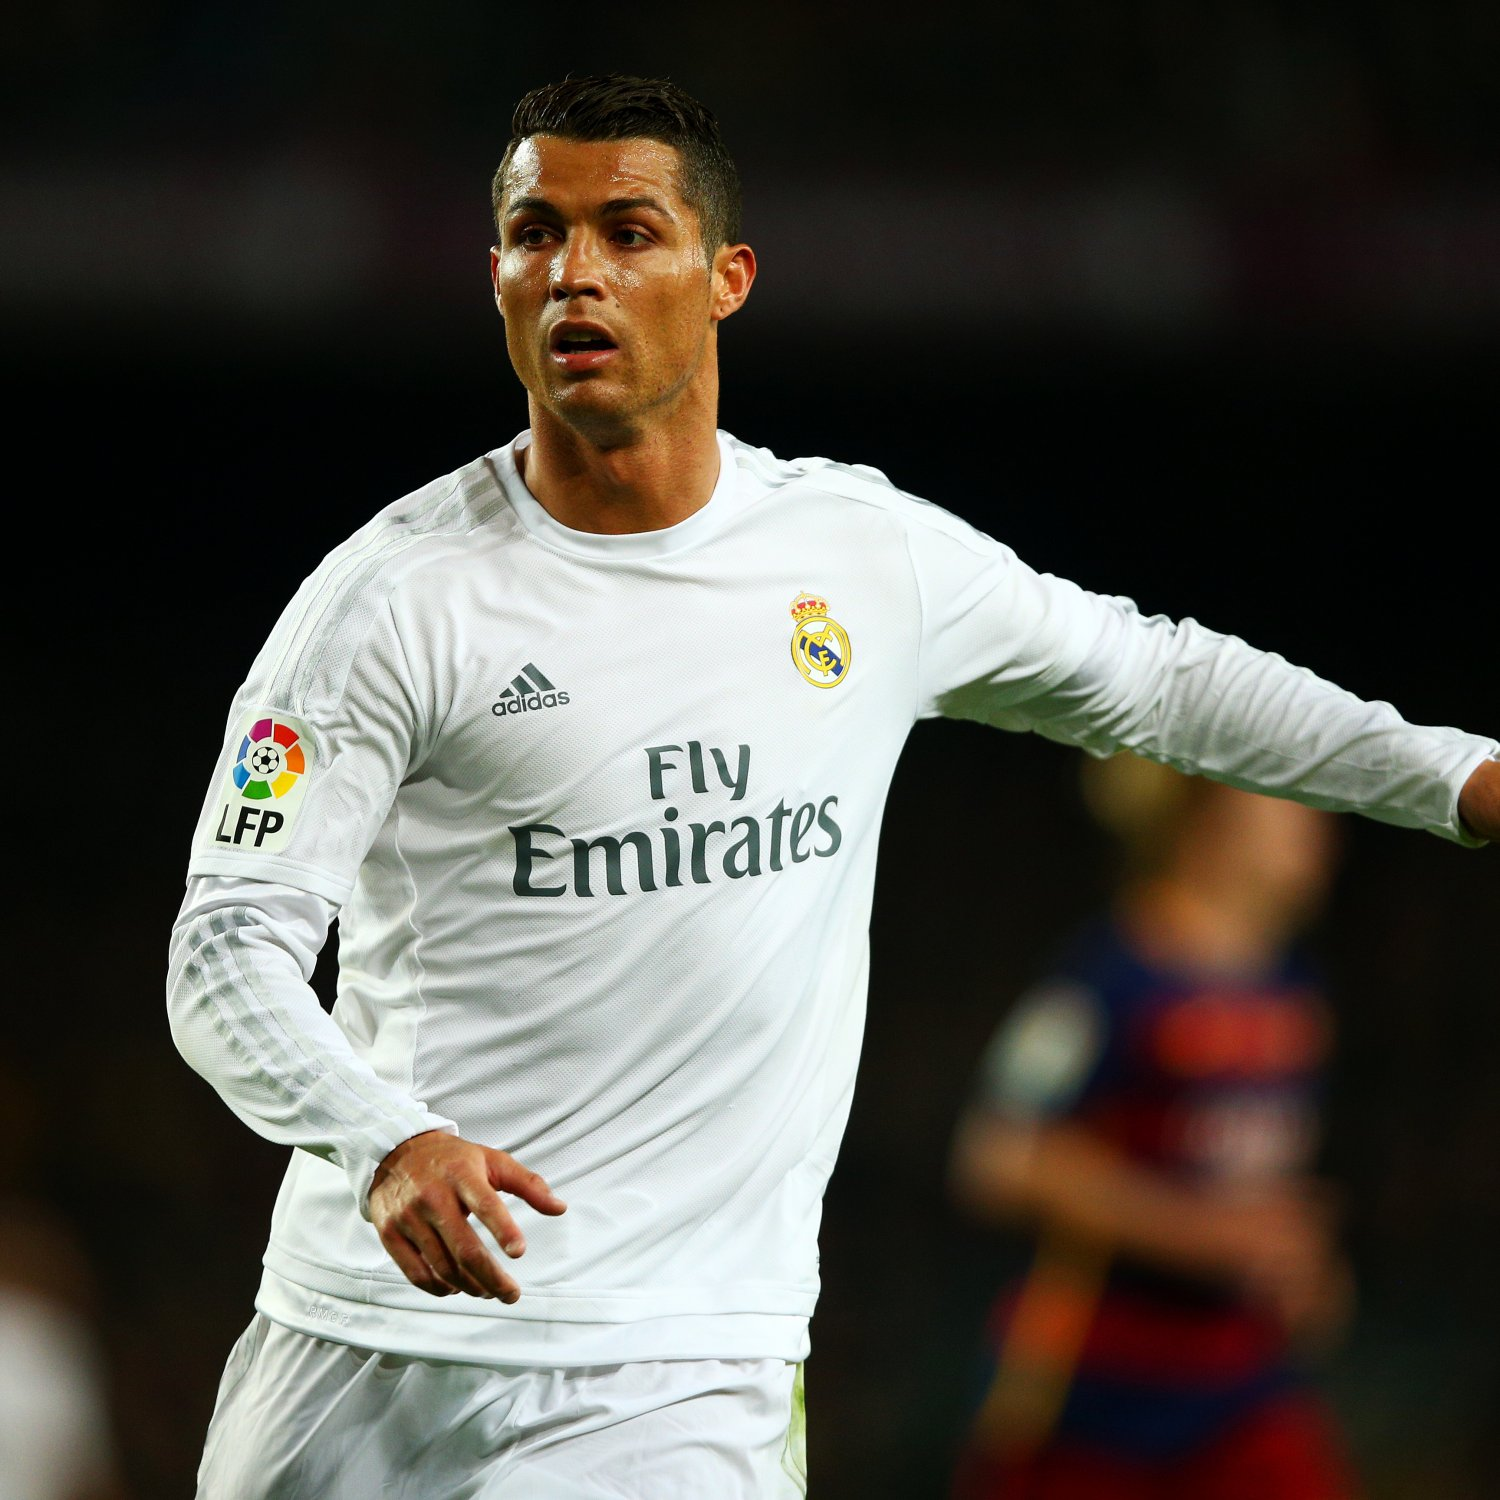 Manchester United Transfer News Lucas Moura And Cristiano: Real Madrid Transfer News: Latest On Cristiano Ronaldo